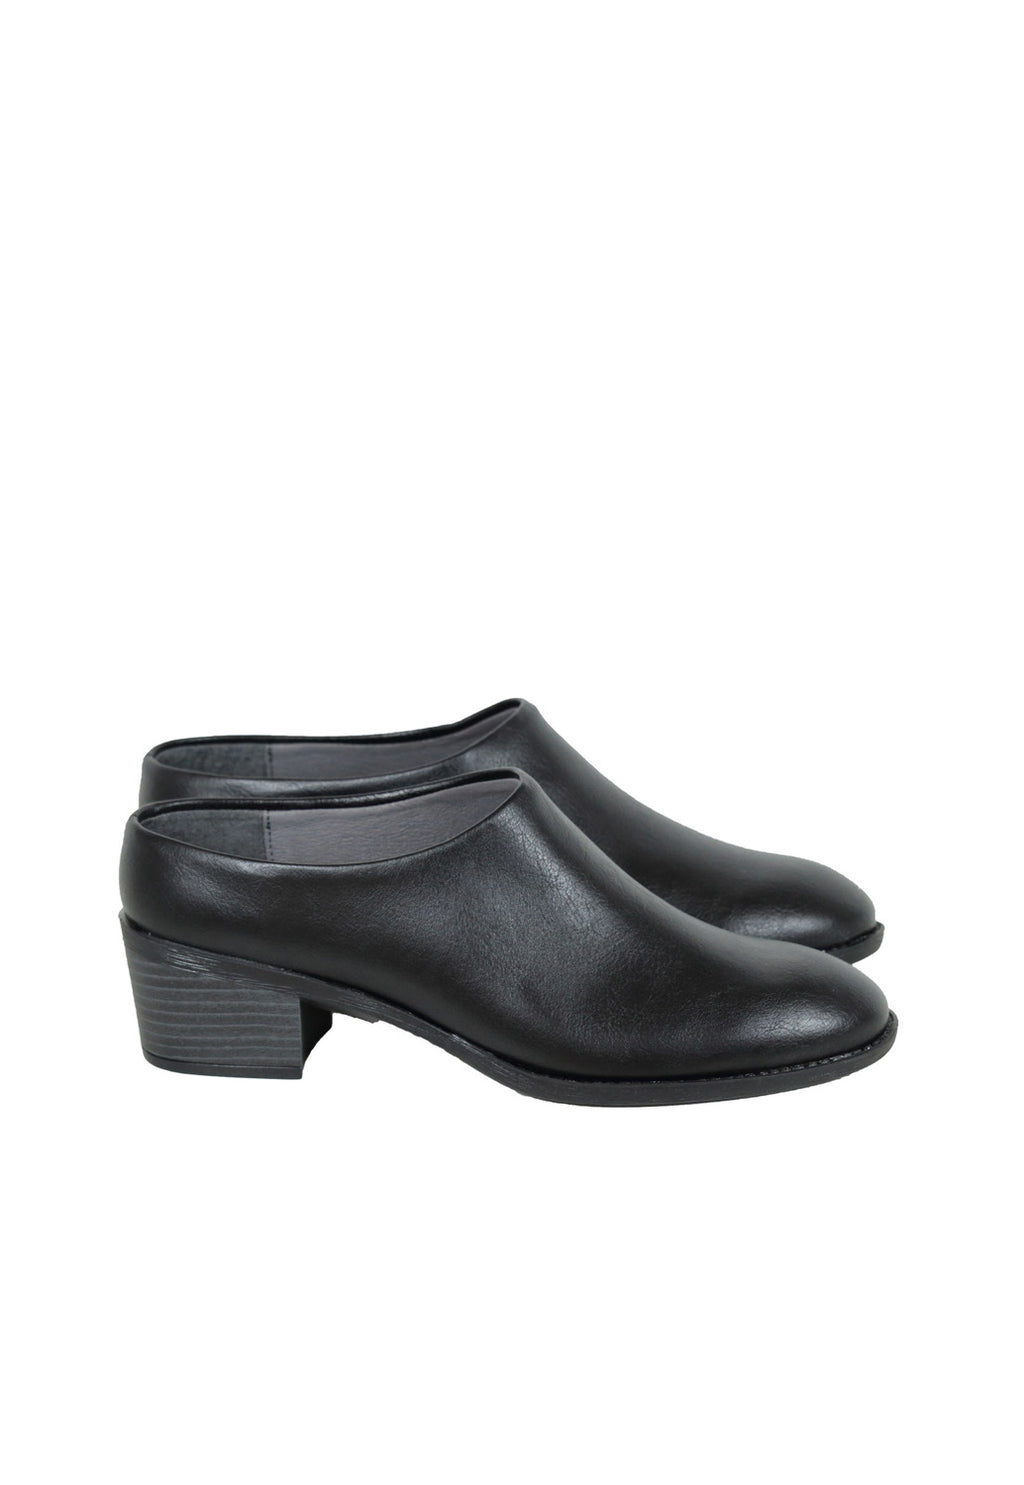 Ovyo Mules in Black, shoes, Bahatika, - nois